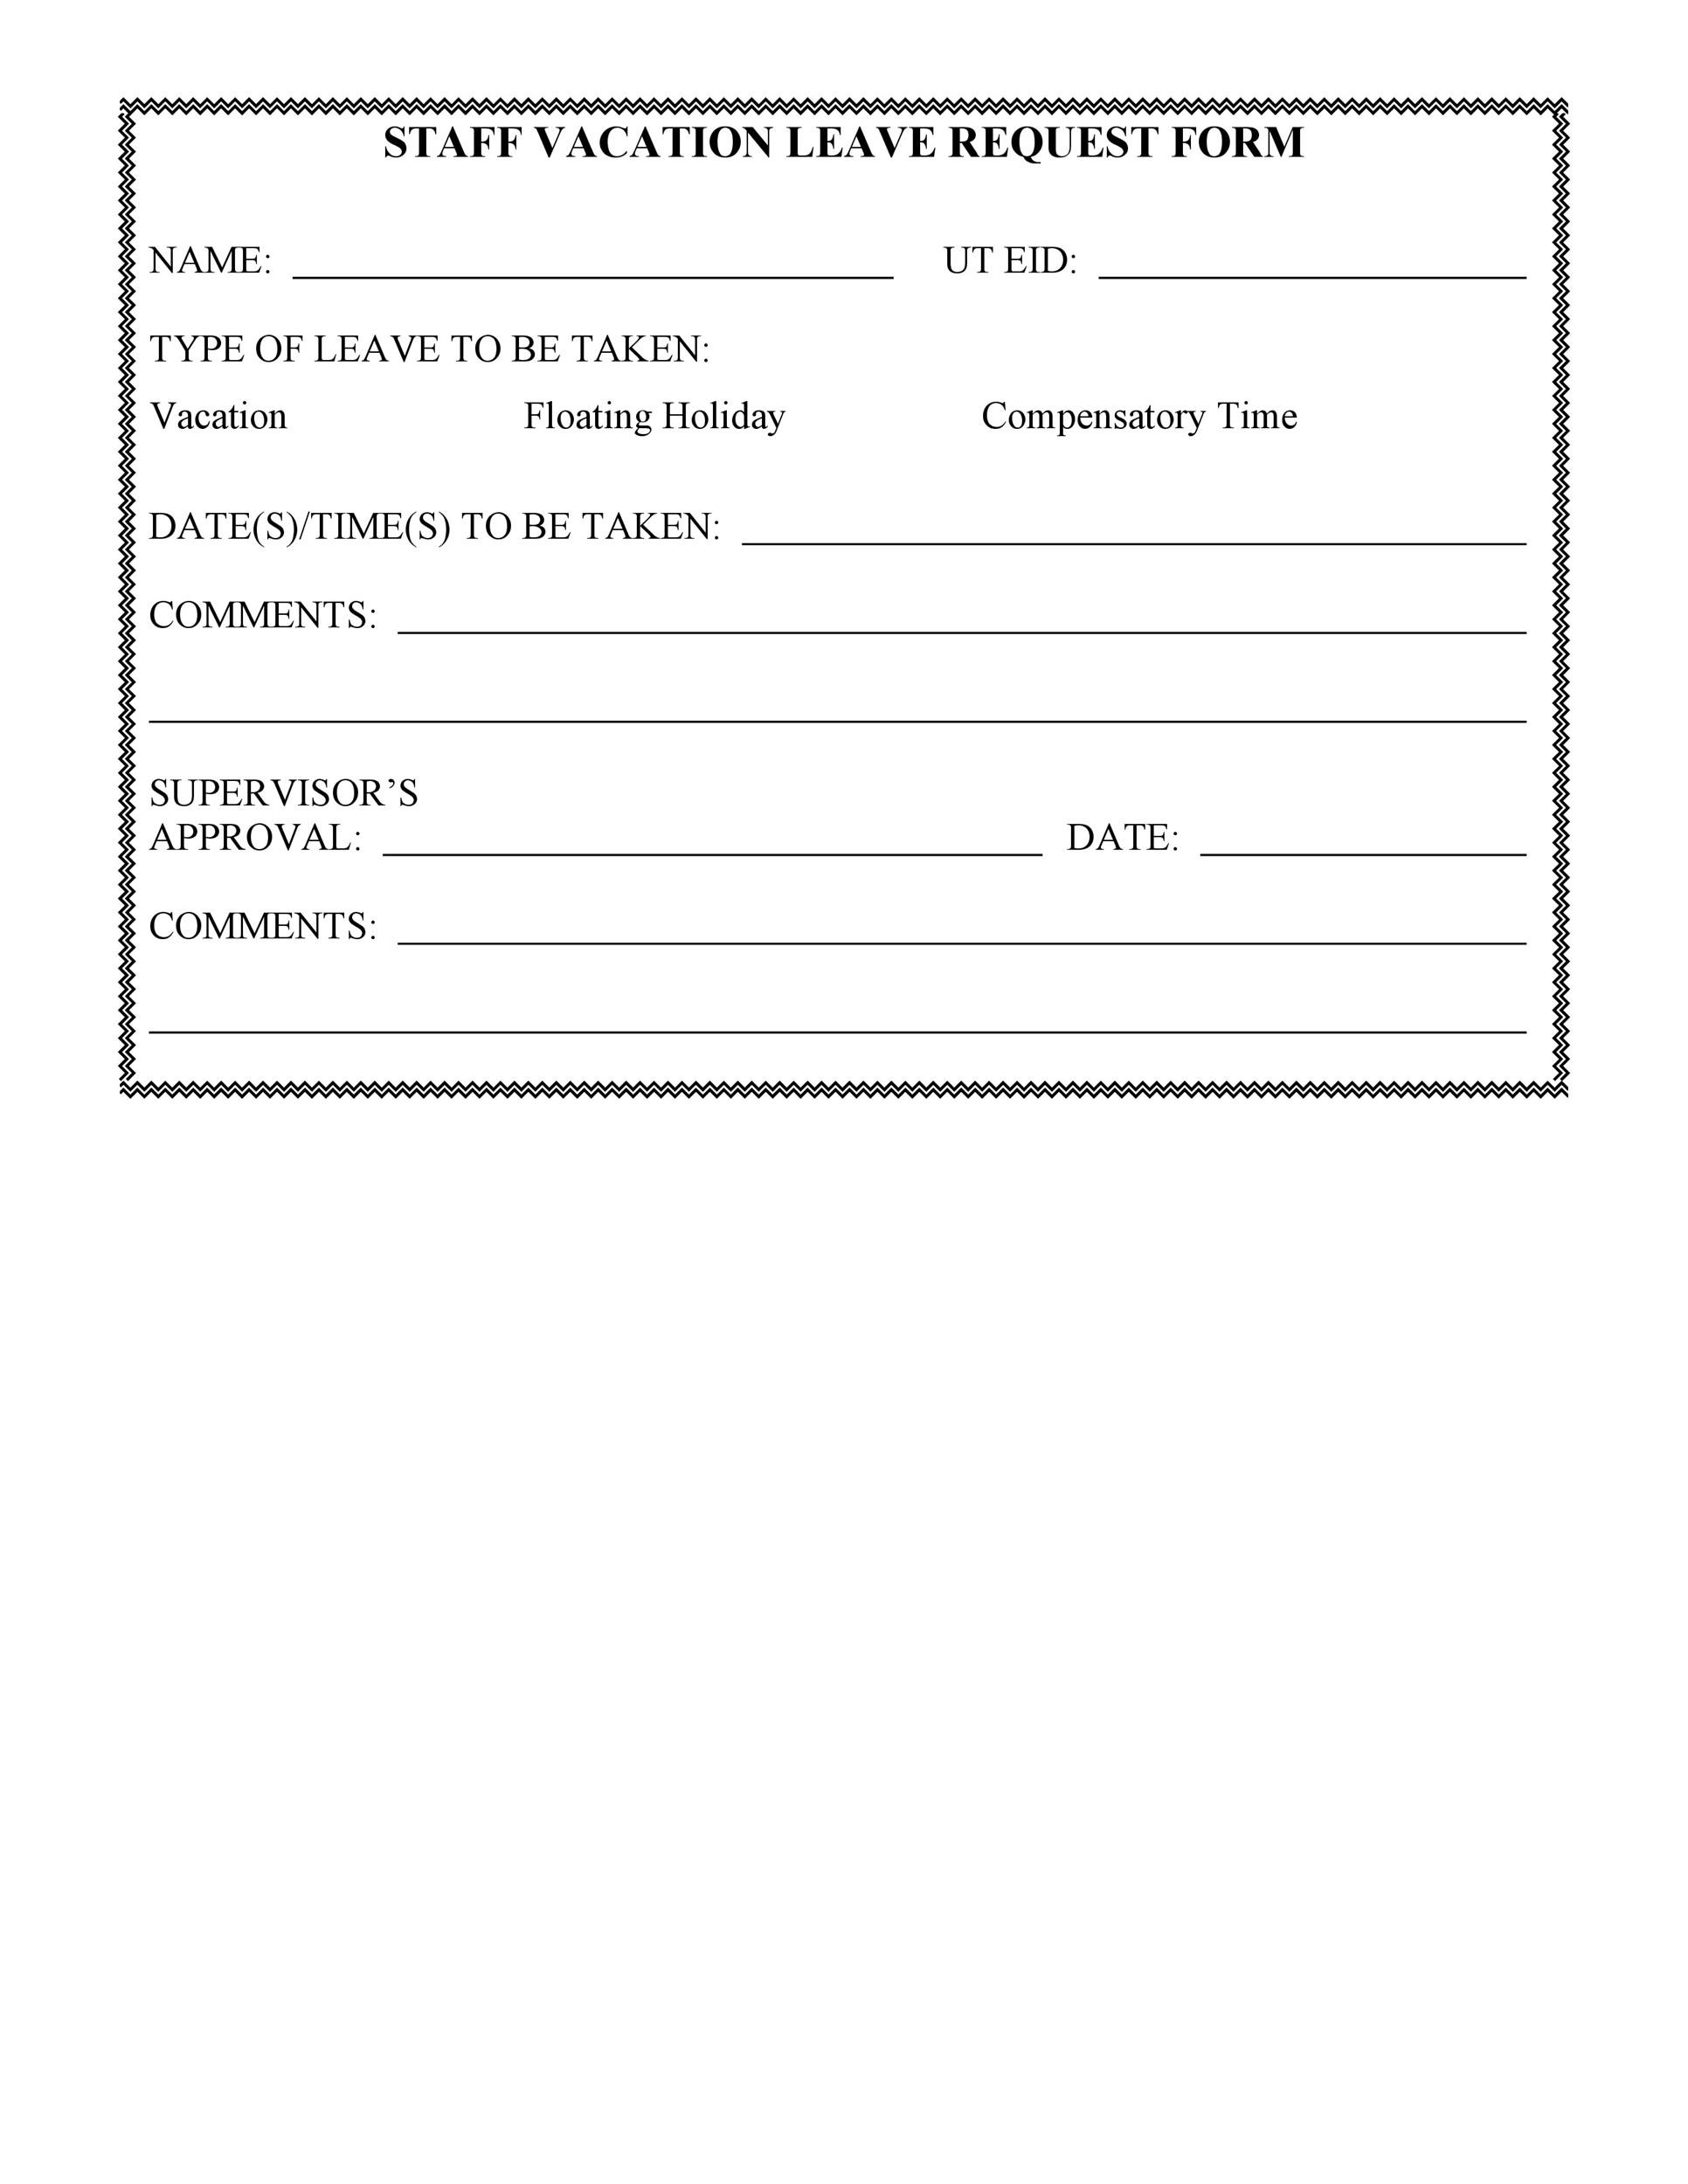 Free vacation request form 18